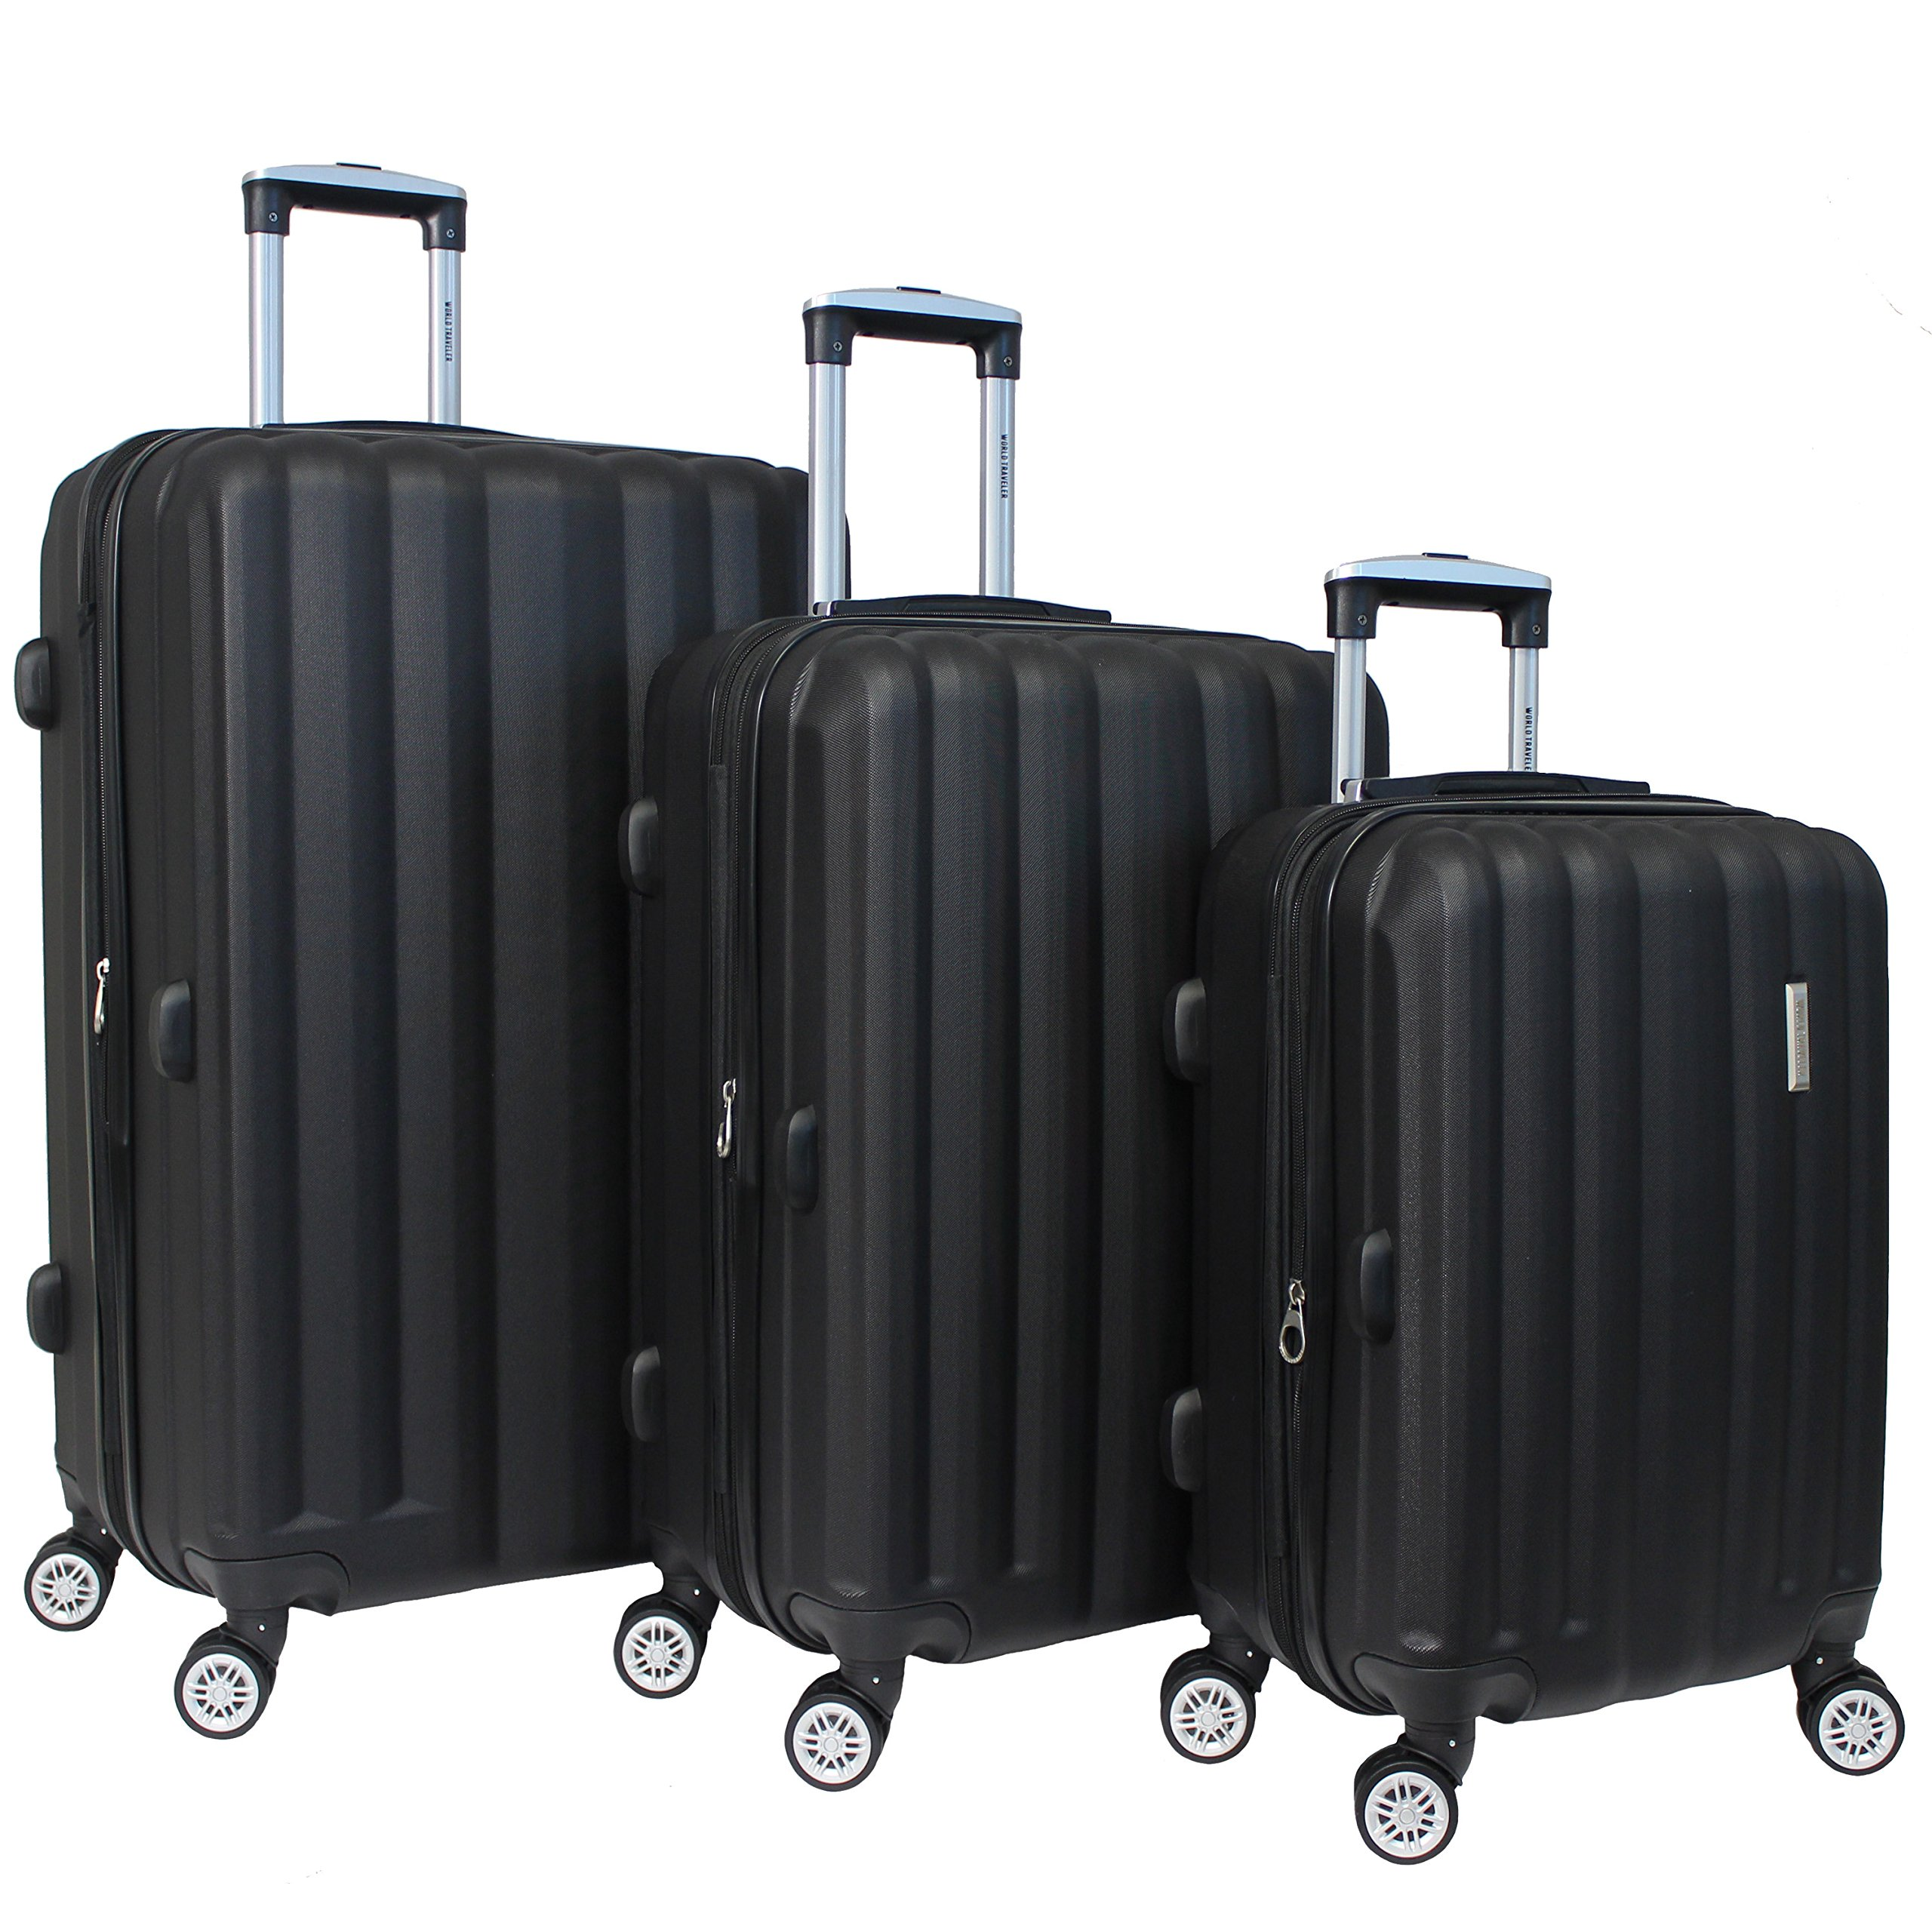 World Traveler Adventure 3-Piece Hardside Spinner Luggage Set, Black